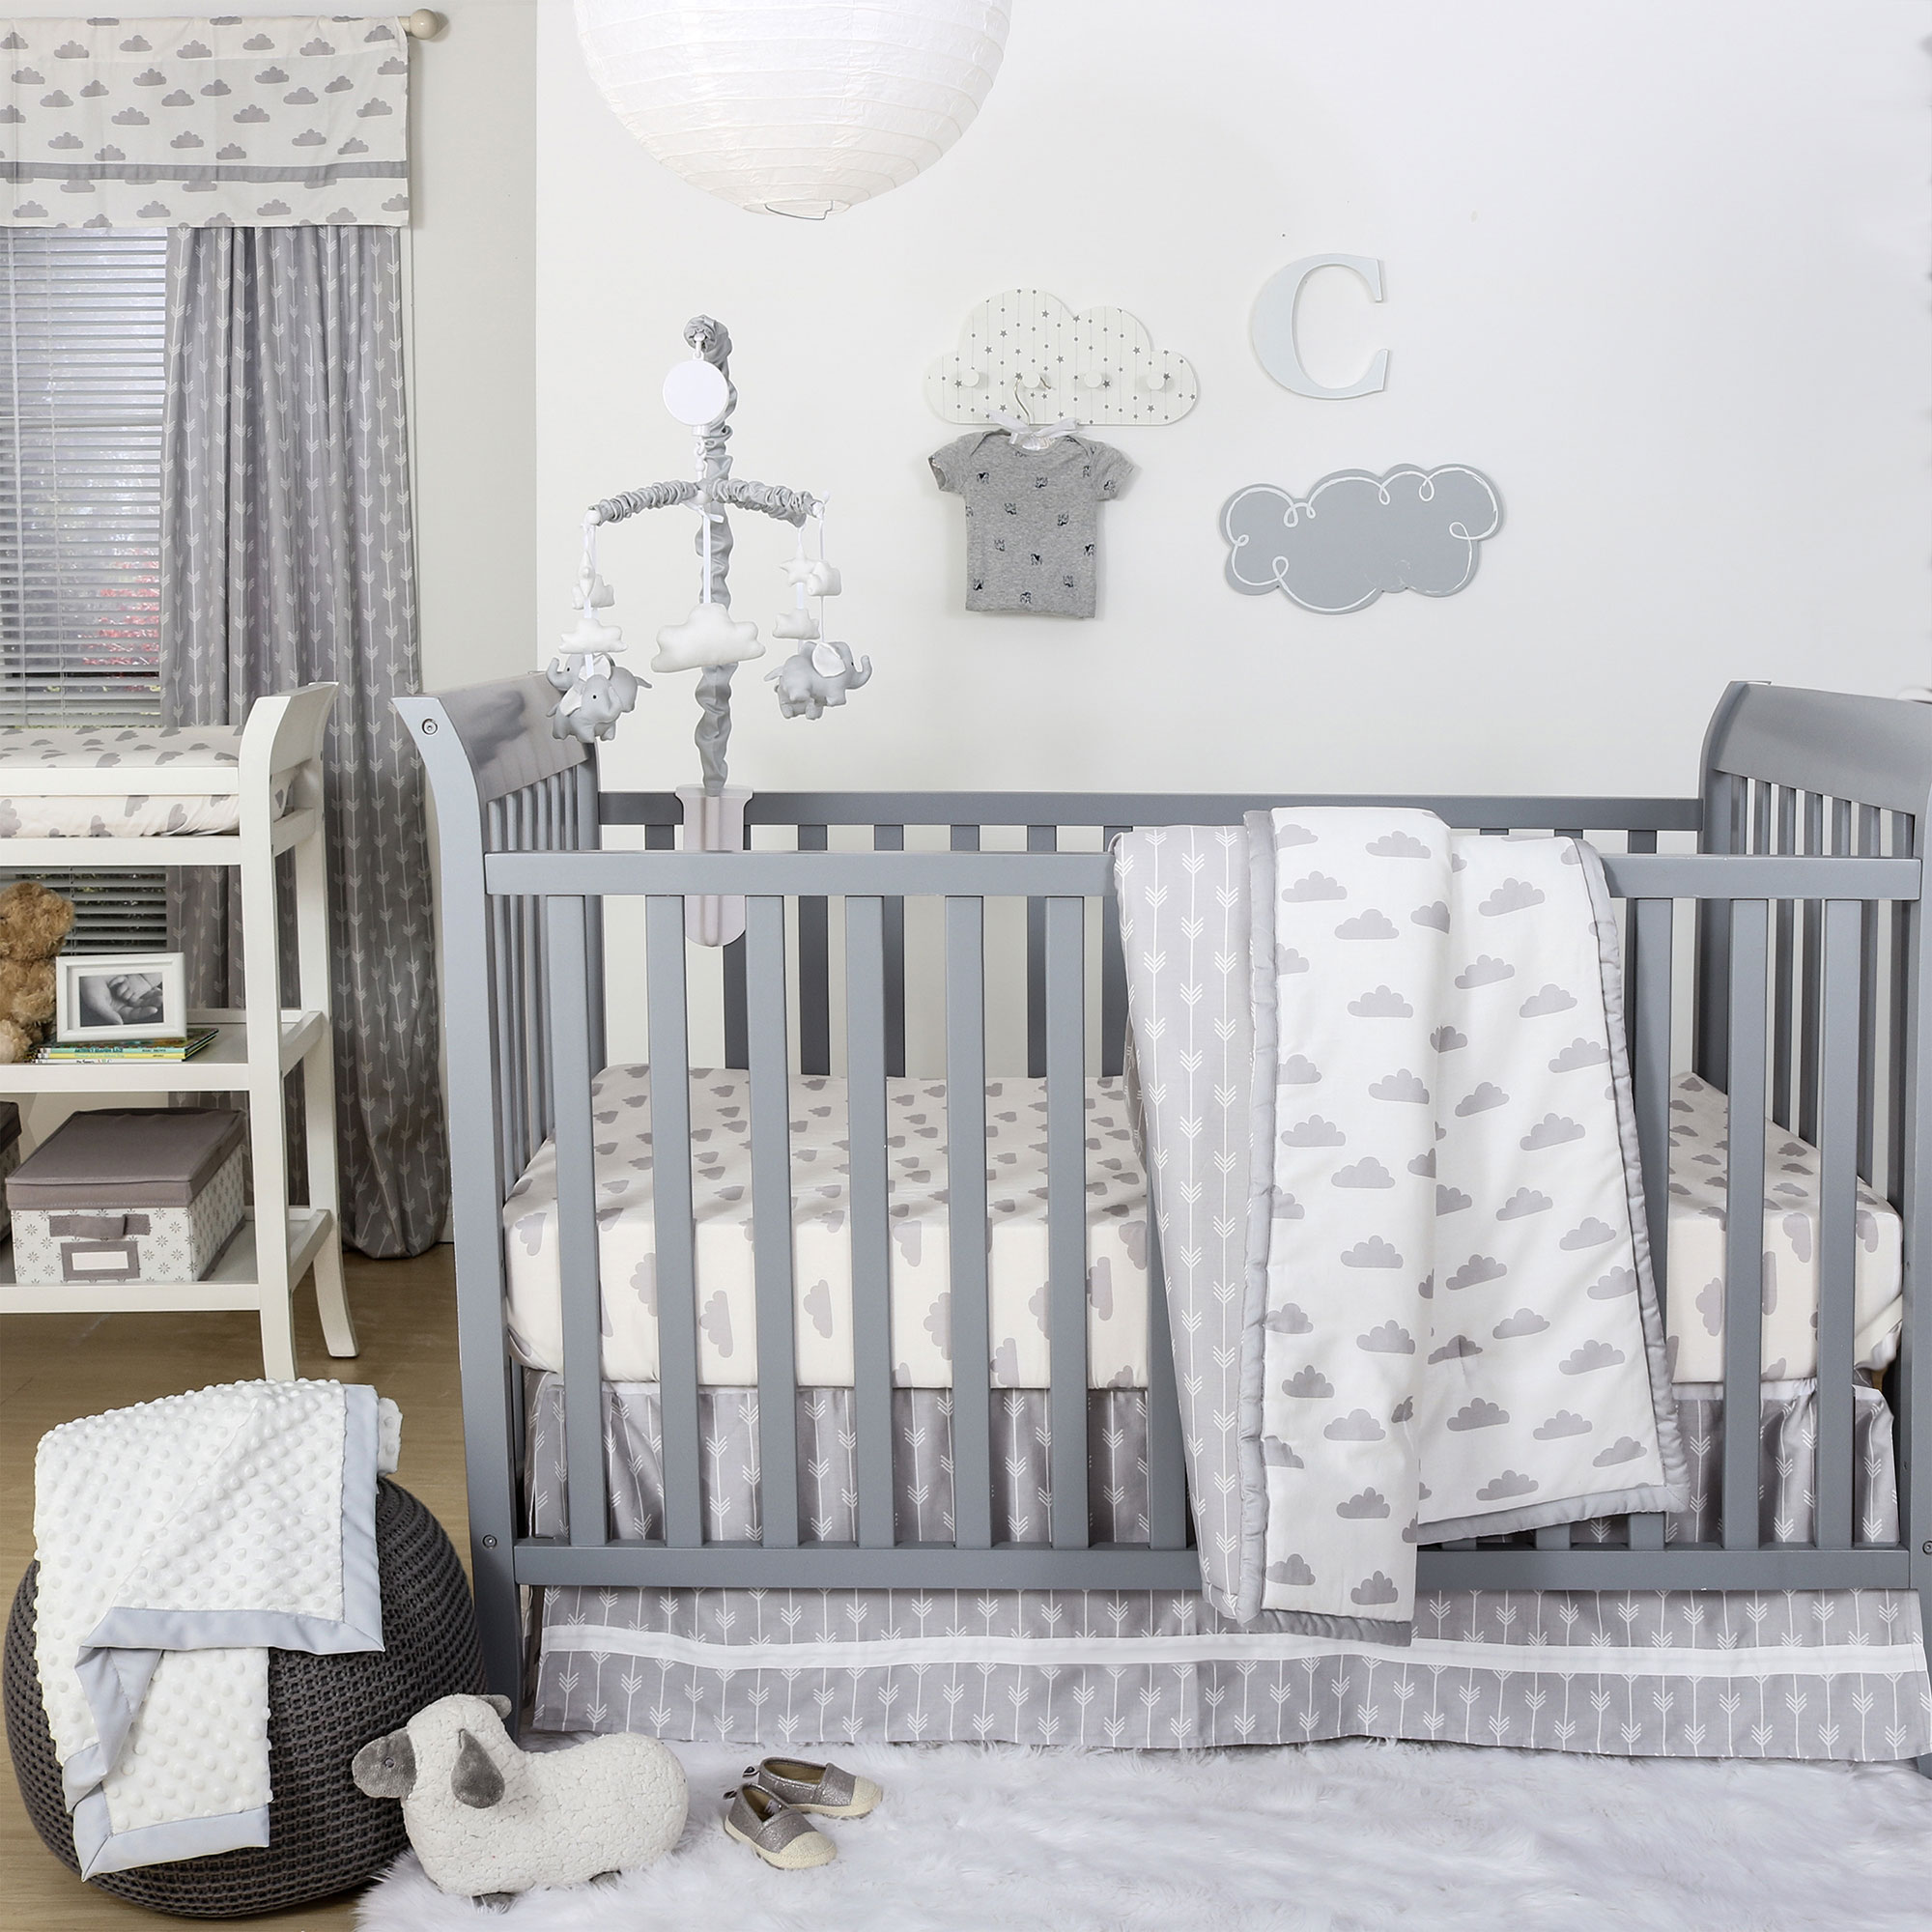 The Peanut Shell 3 Piece Baby Crib Bedding Set - Grey and White Cloud Print - 100% Cotton Quilt, Crib Skirt and Sheet